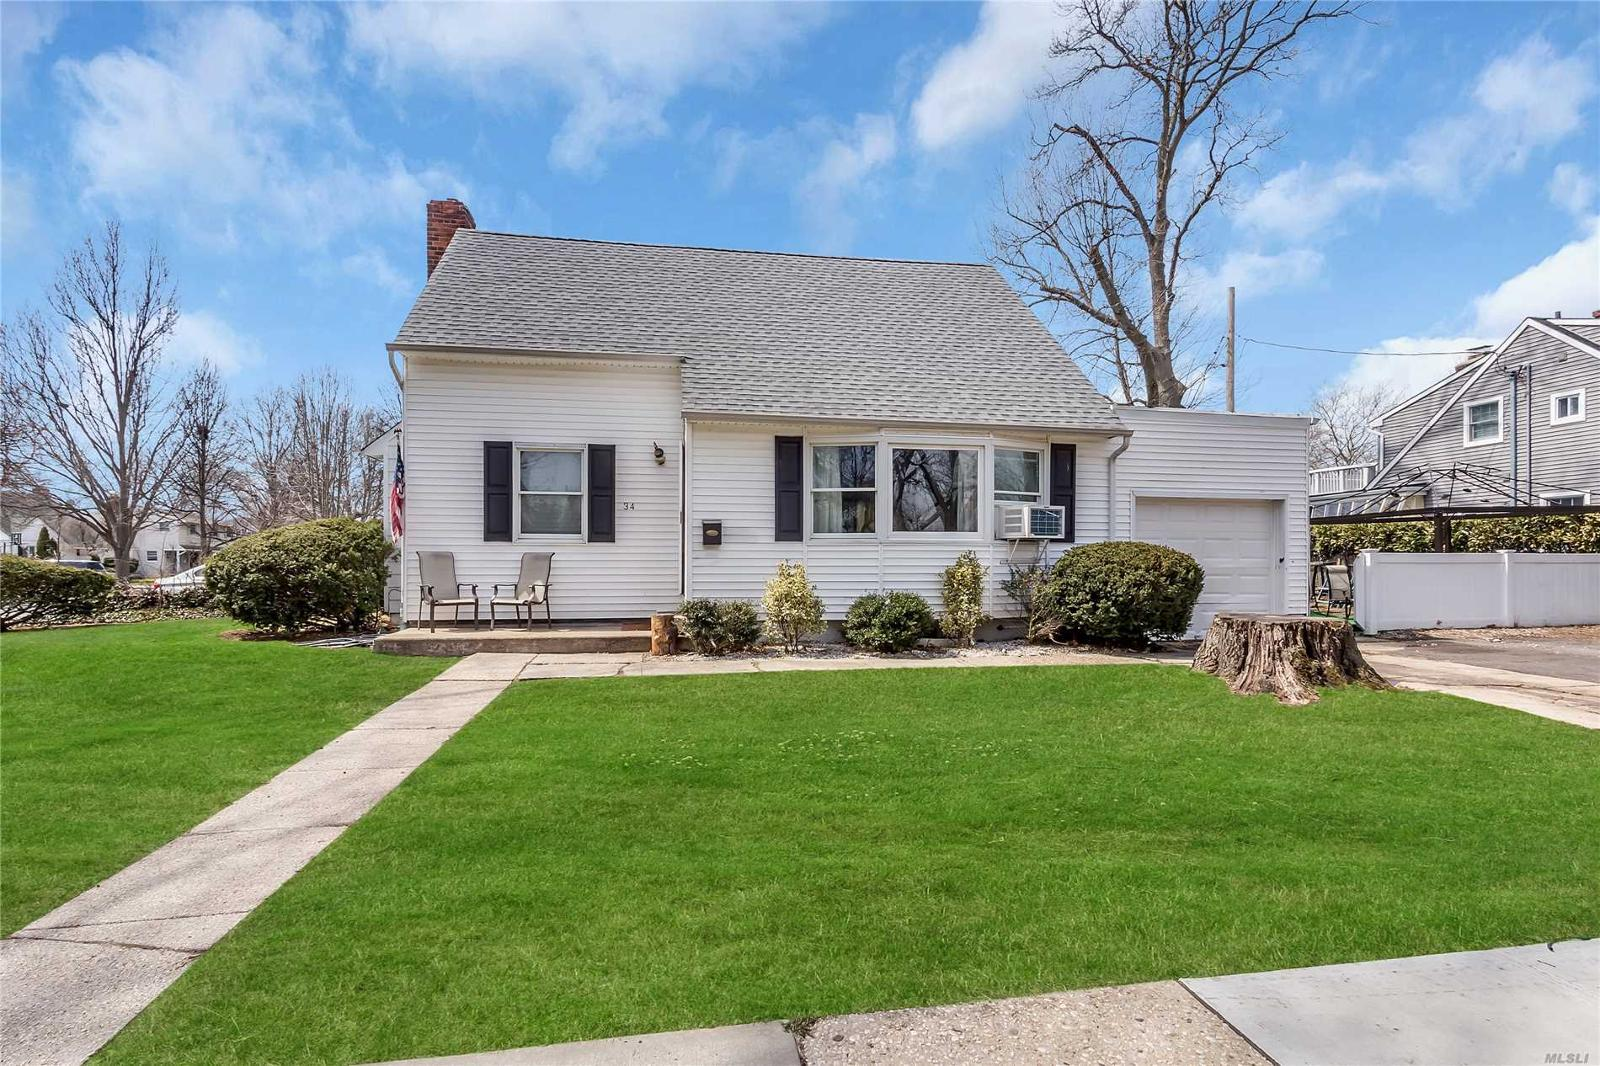 34 Grove St, Garden City, NY — MLS# 3020685 — Better Homes and ...